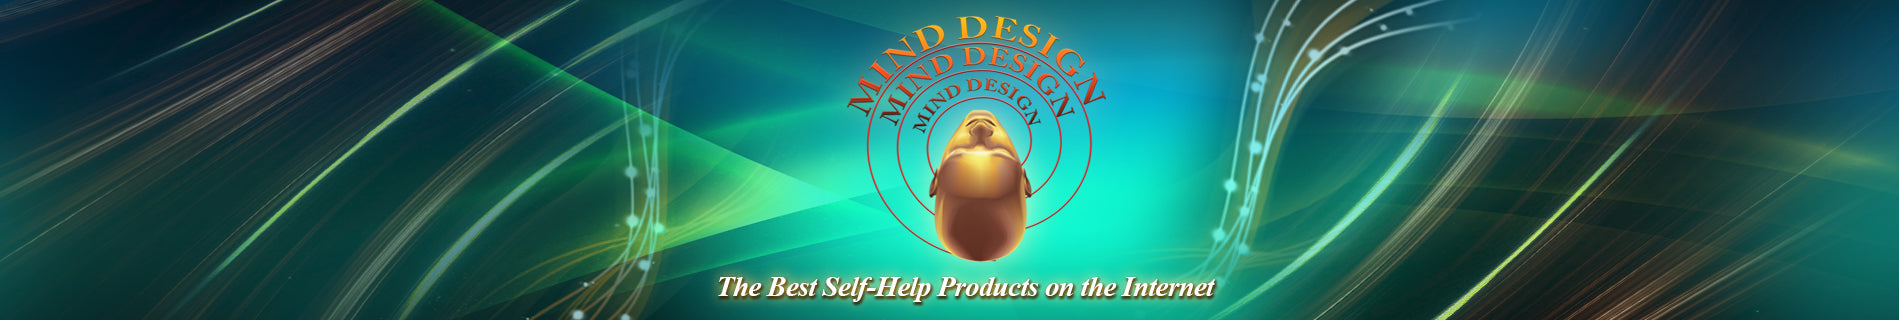 Mind Design Unlimited - The Best Self Help Products on the Internet